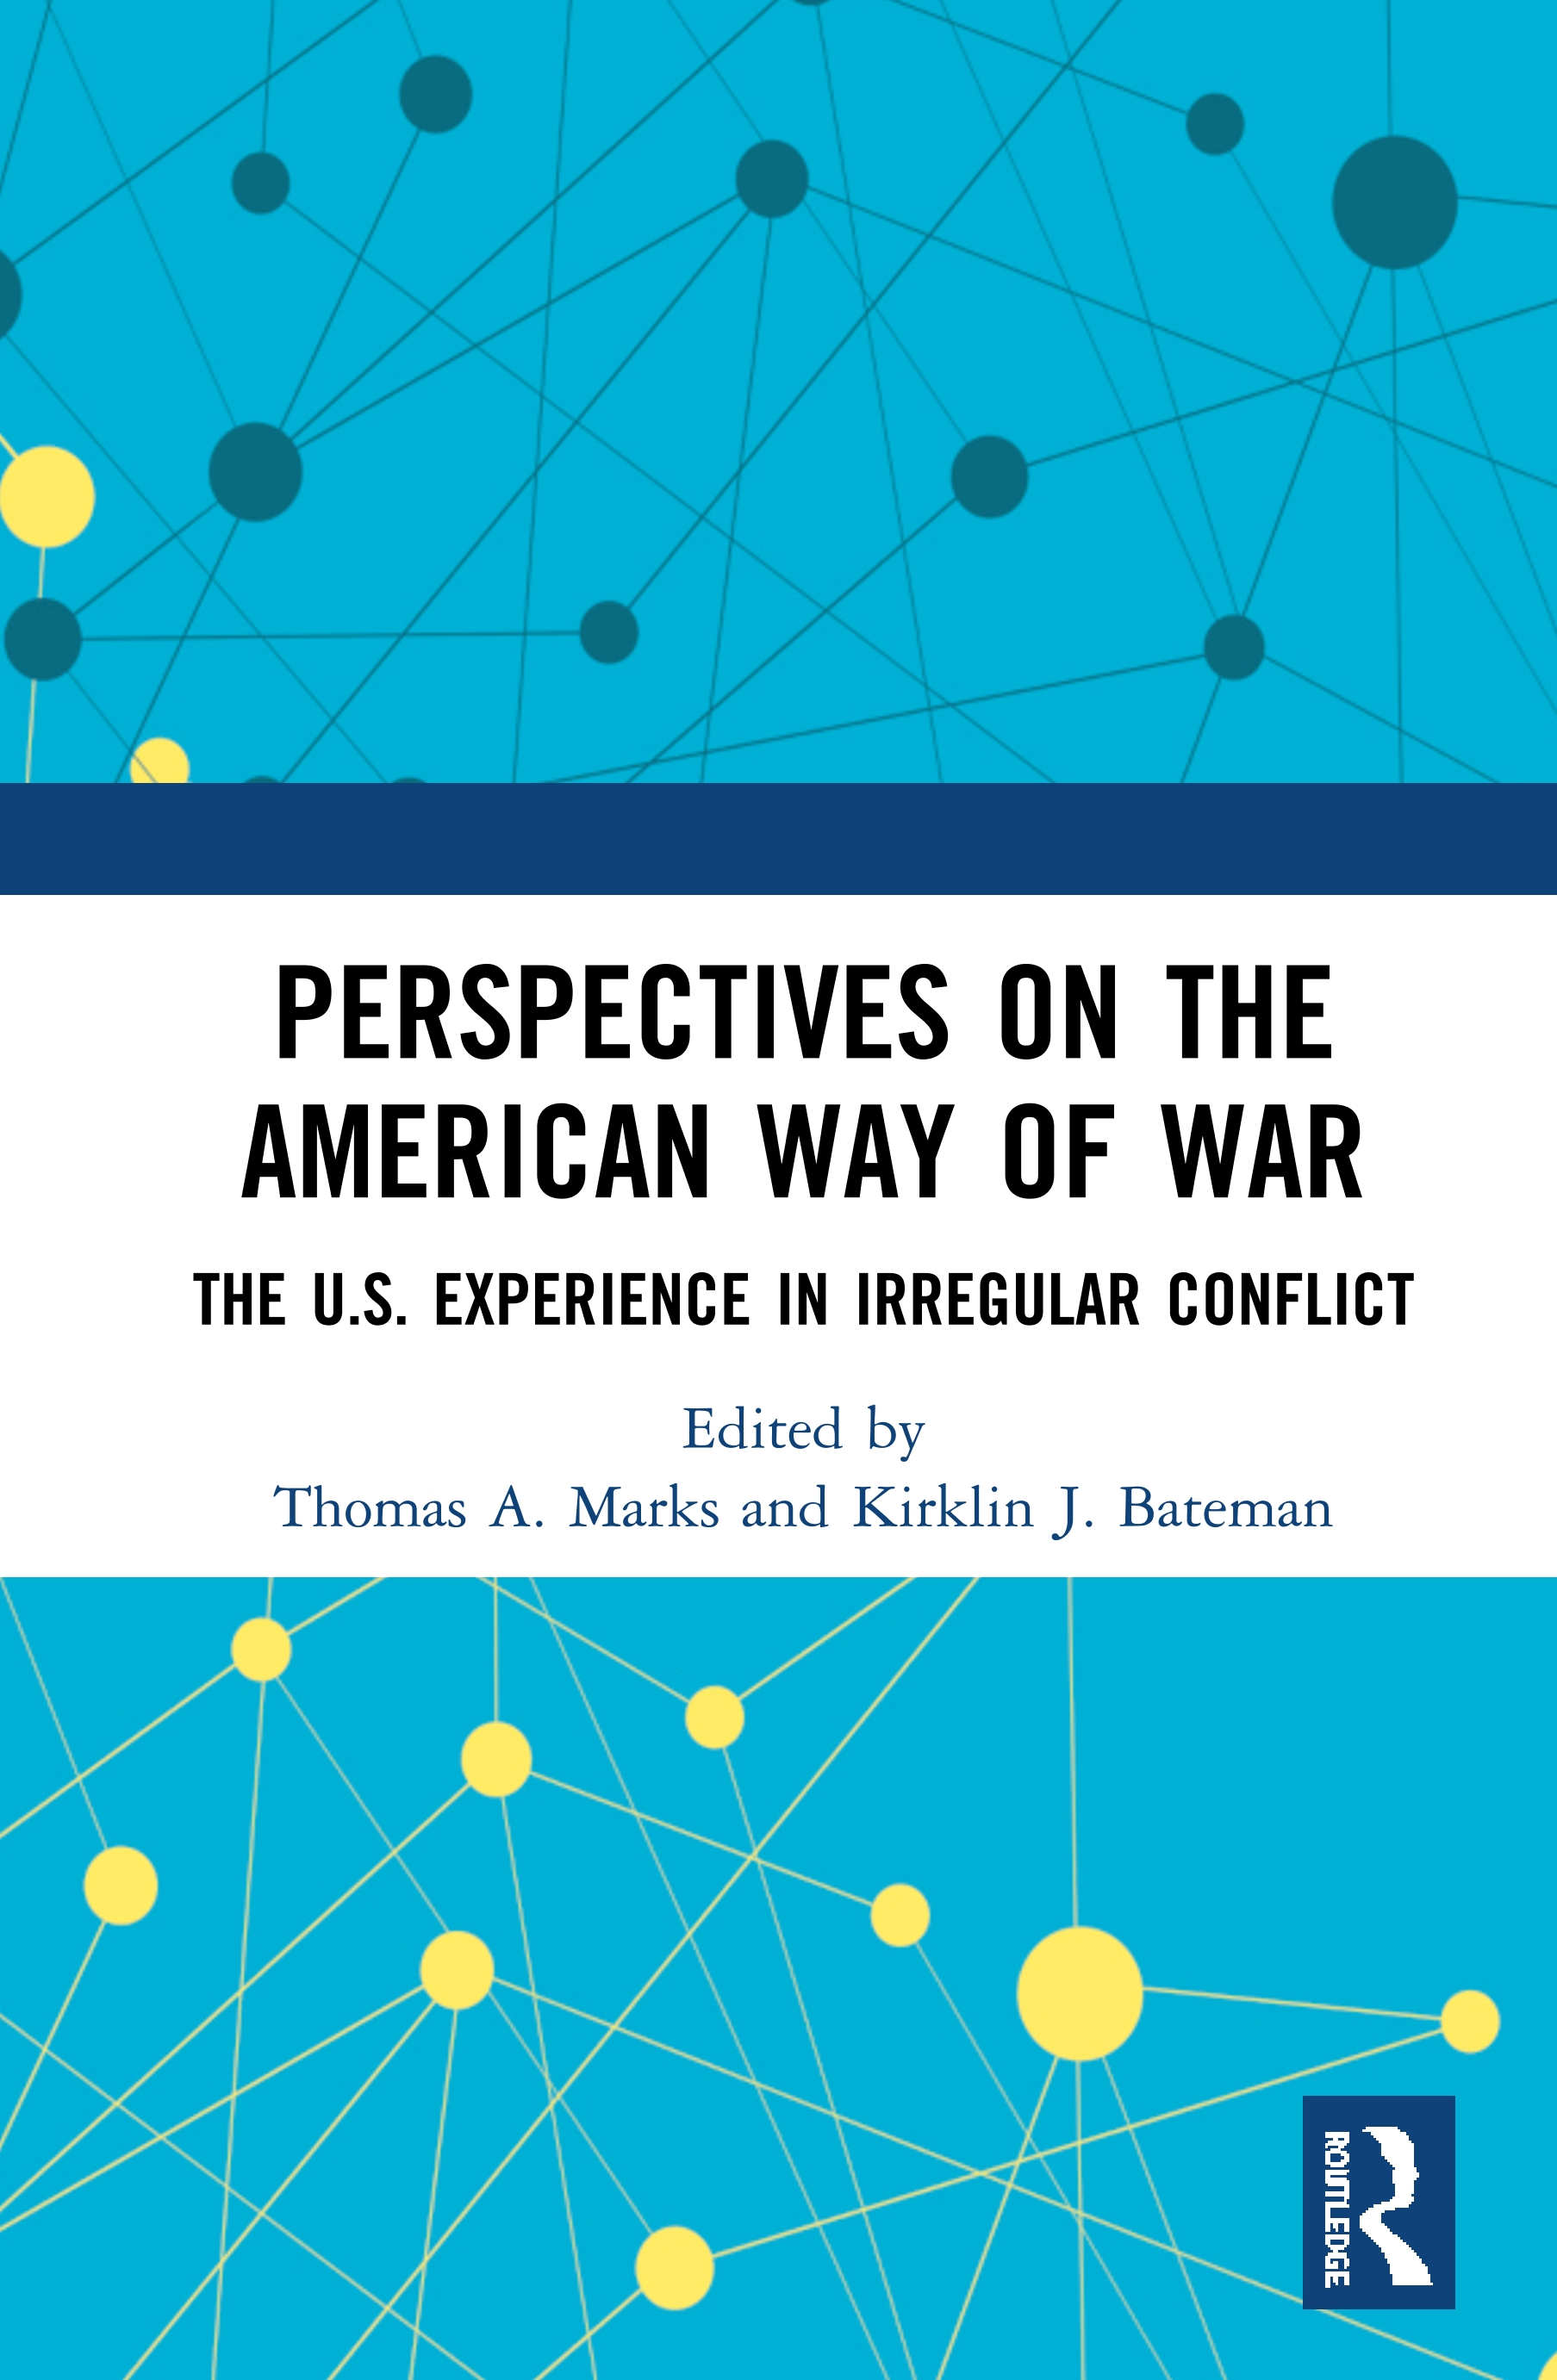 Perspectives on the American Way of War: The U.S. Experience in Irregular Conflict book cover